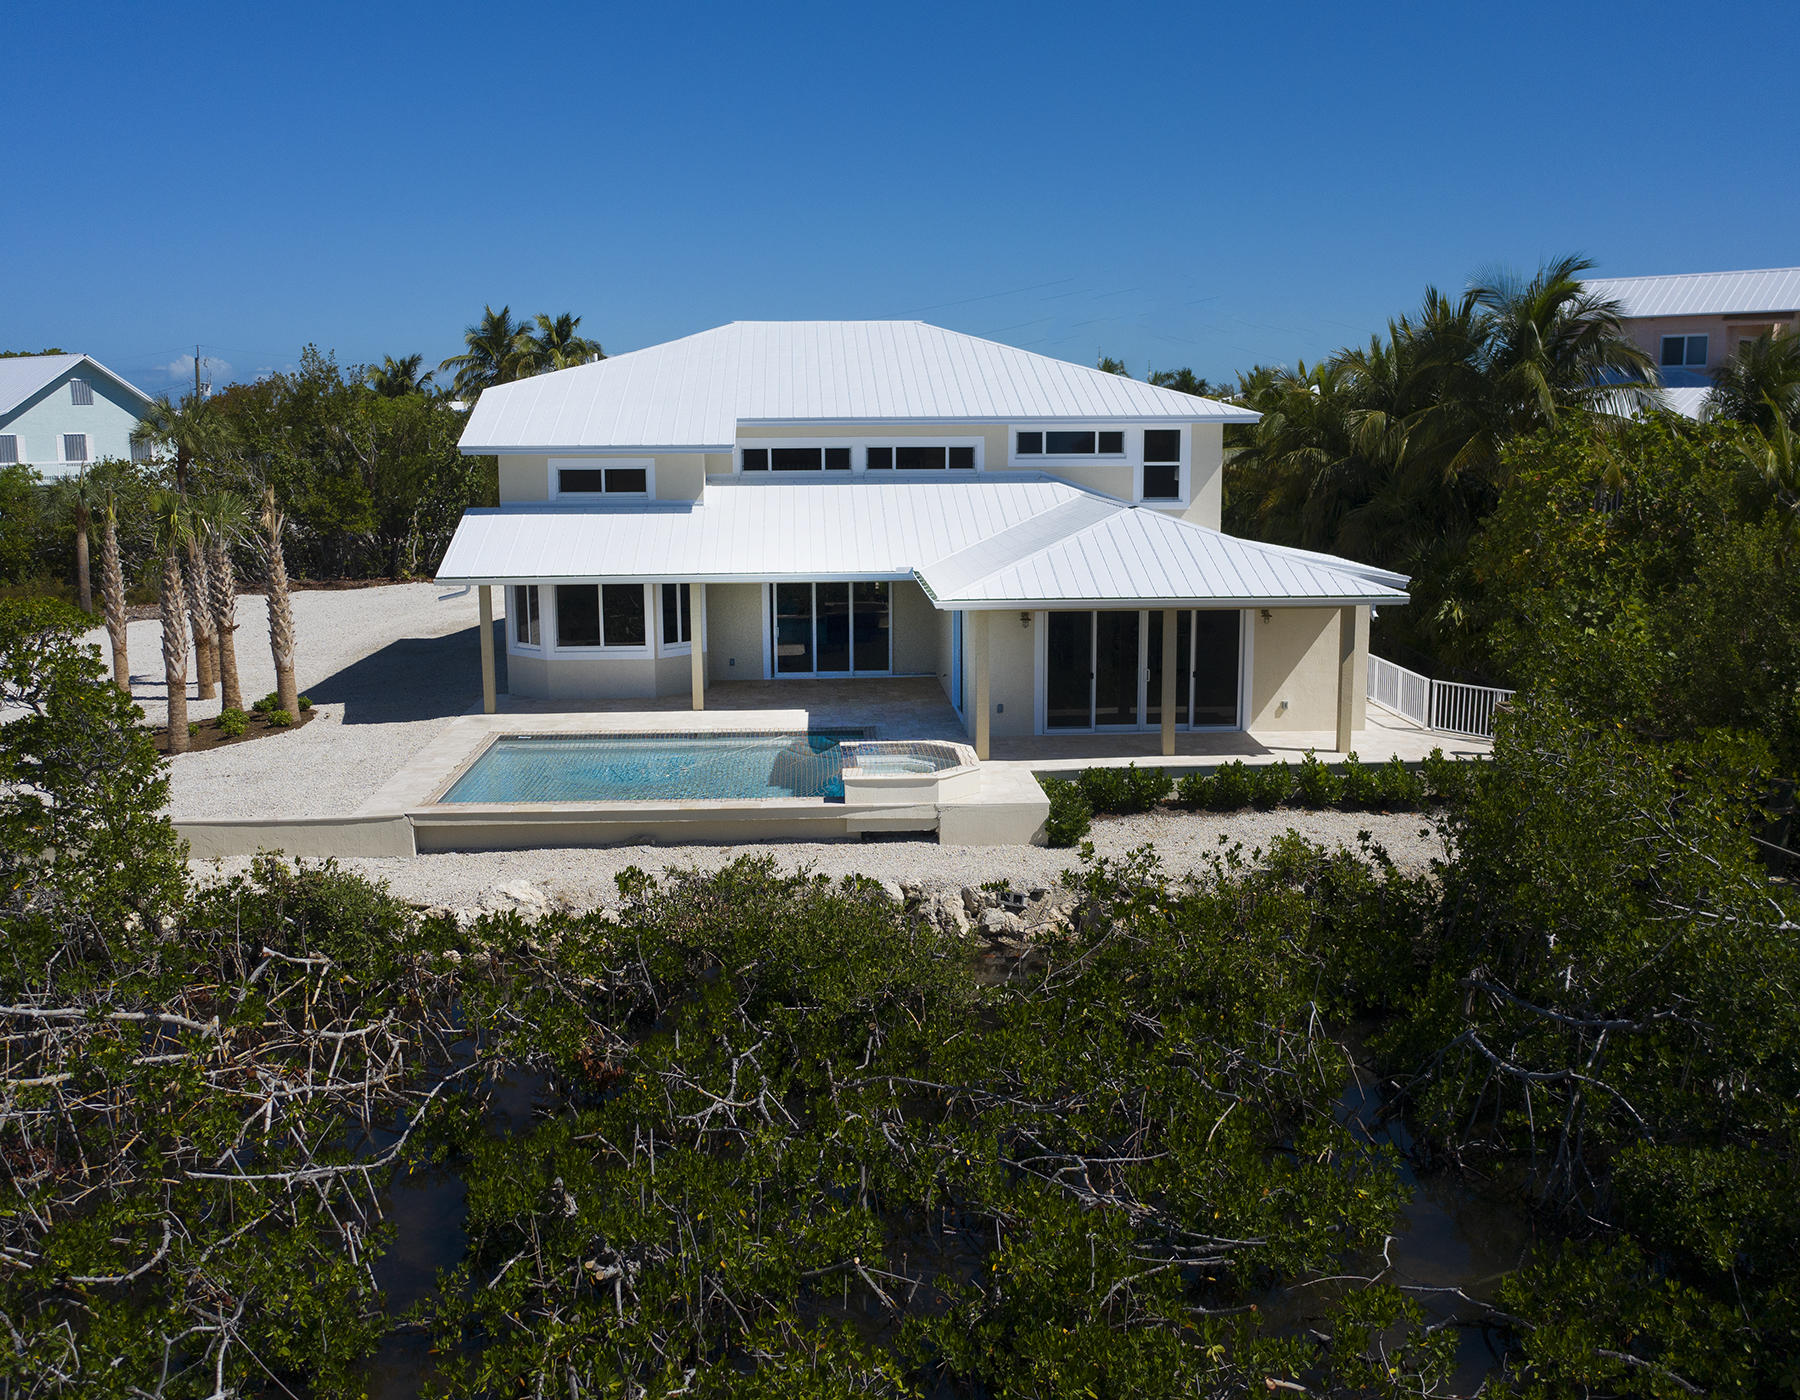 Islamorada - Active Listings | Ocean Sotheby's International Realty